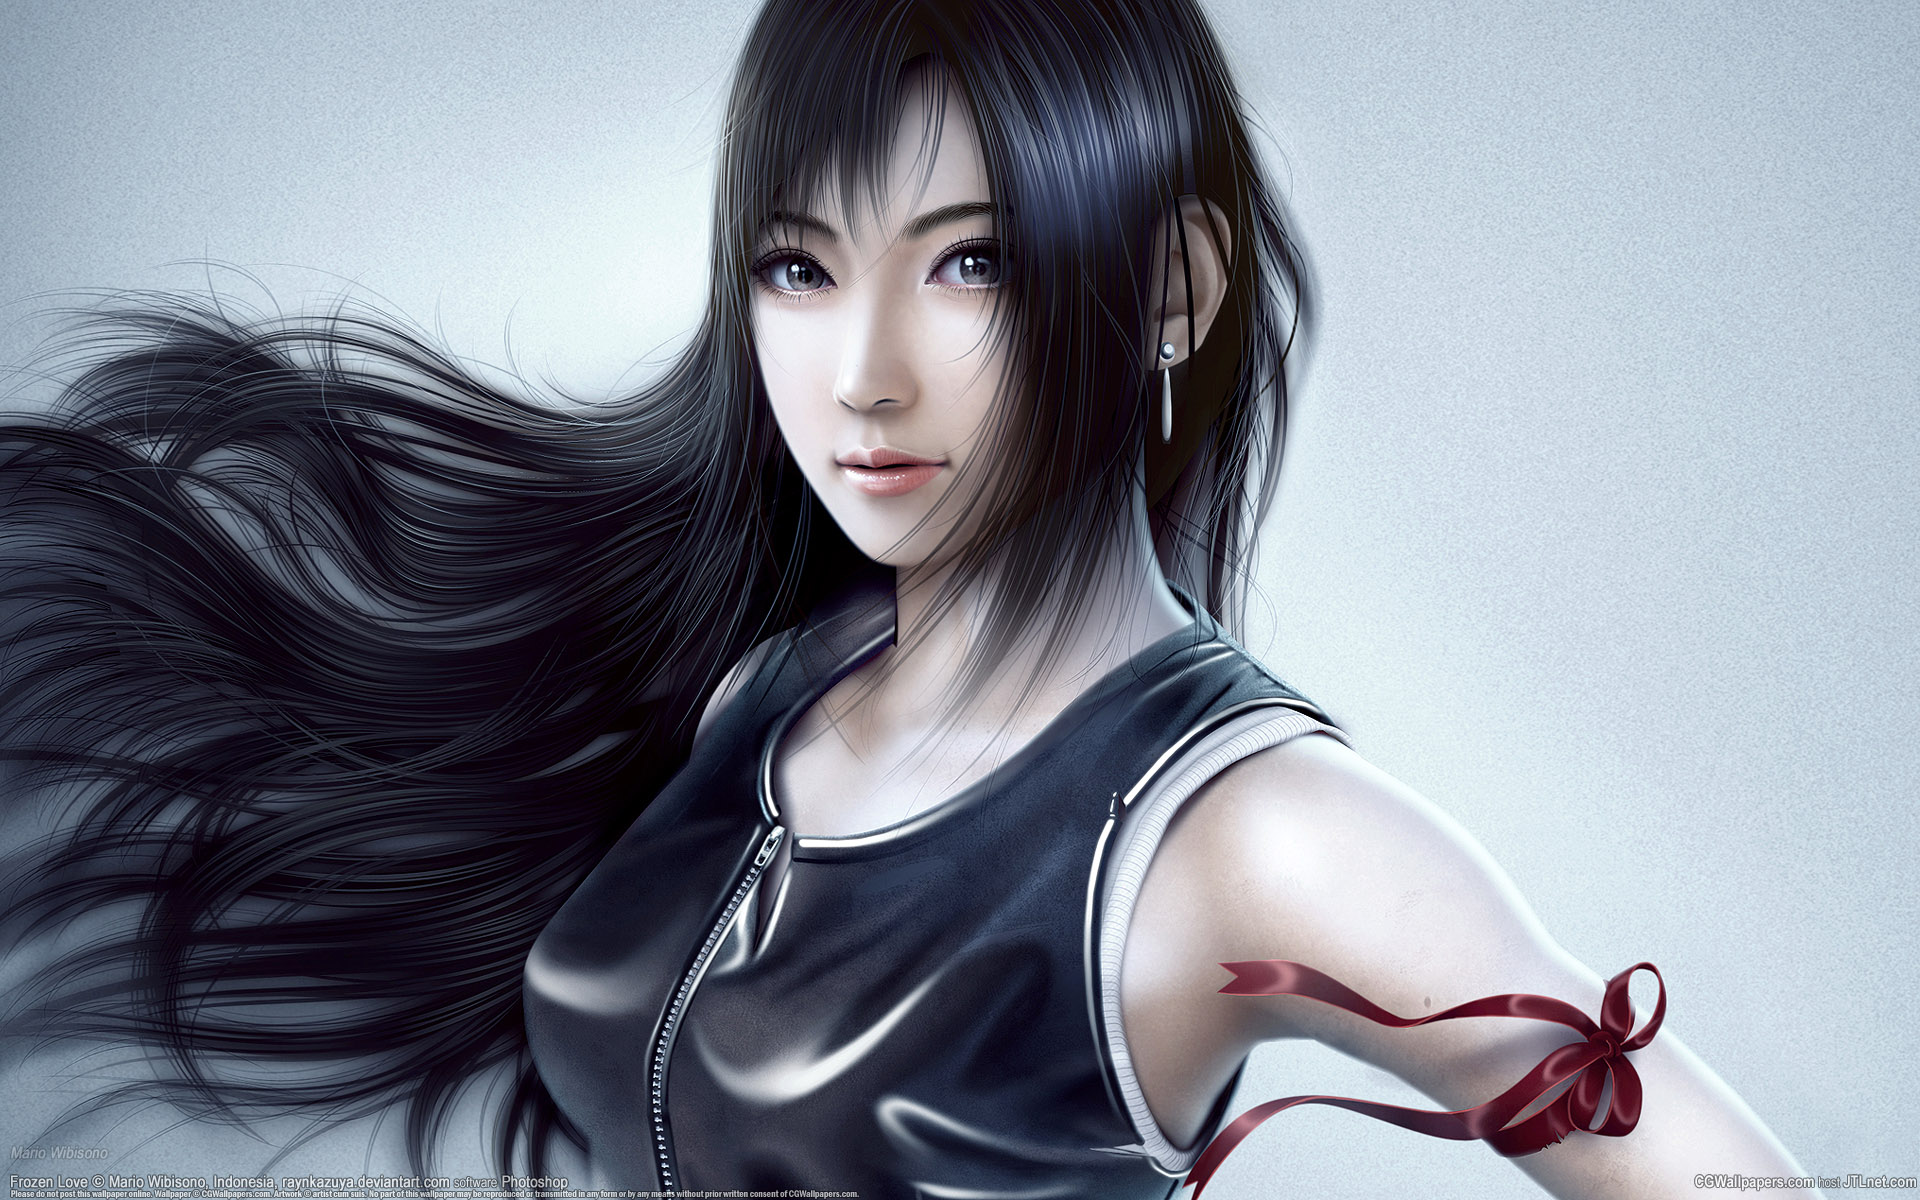 Image: http://www.desktopwallpaperhd.net/wallpapers/6/5/wallpapers-desktop-top-japanese-fantasy-cool-girl-69461.jpg